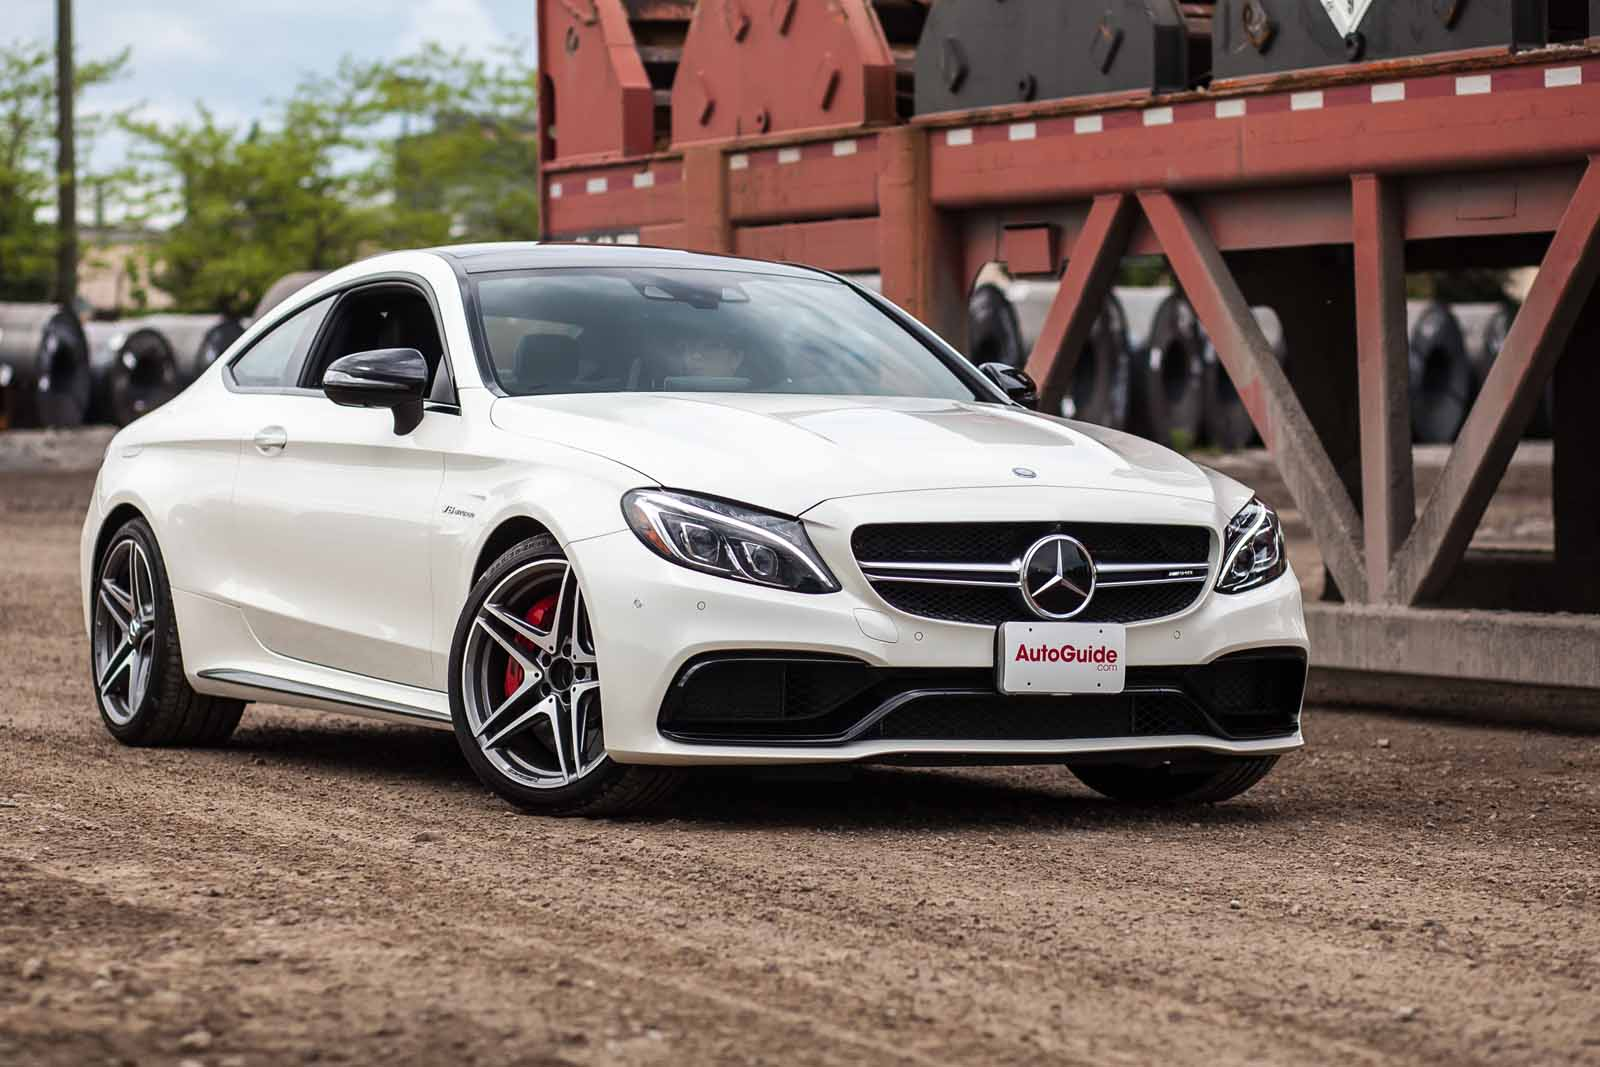 2017 Mercedes Amg C63 S Coupe Review Chris Smart 001